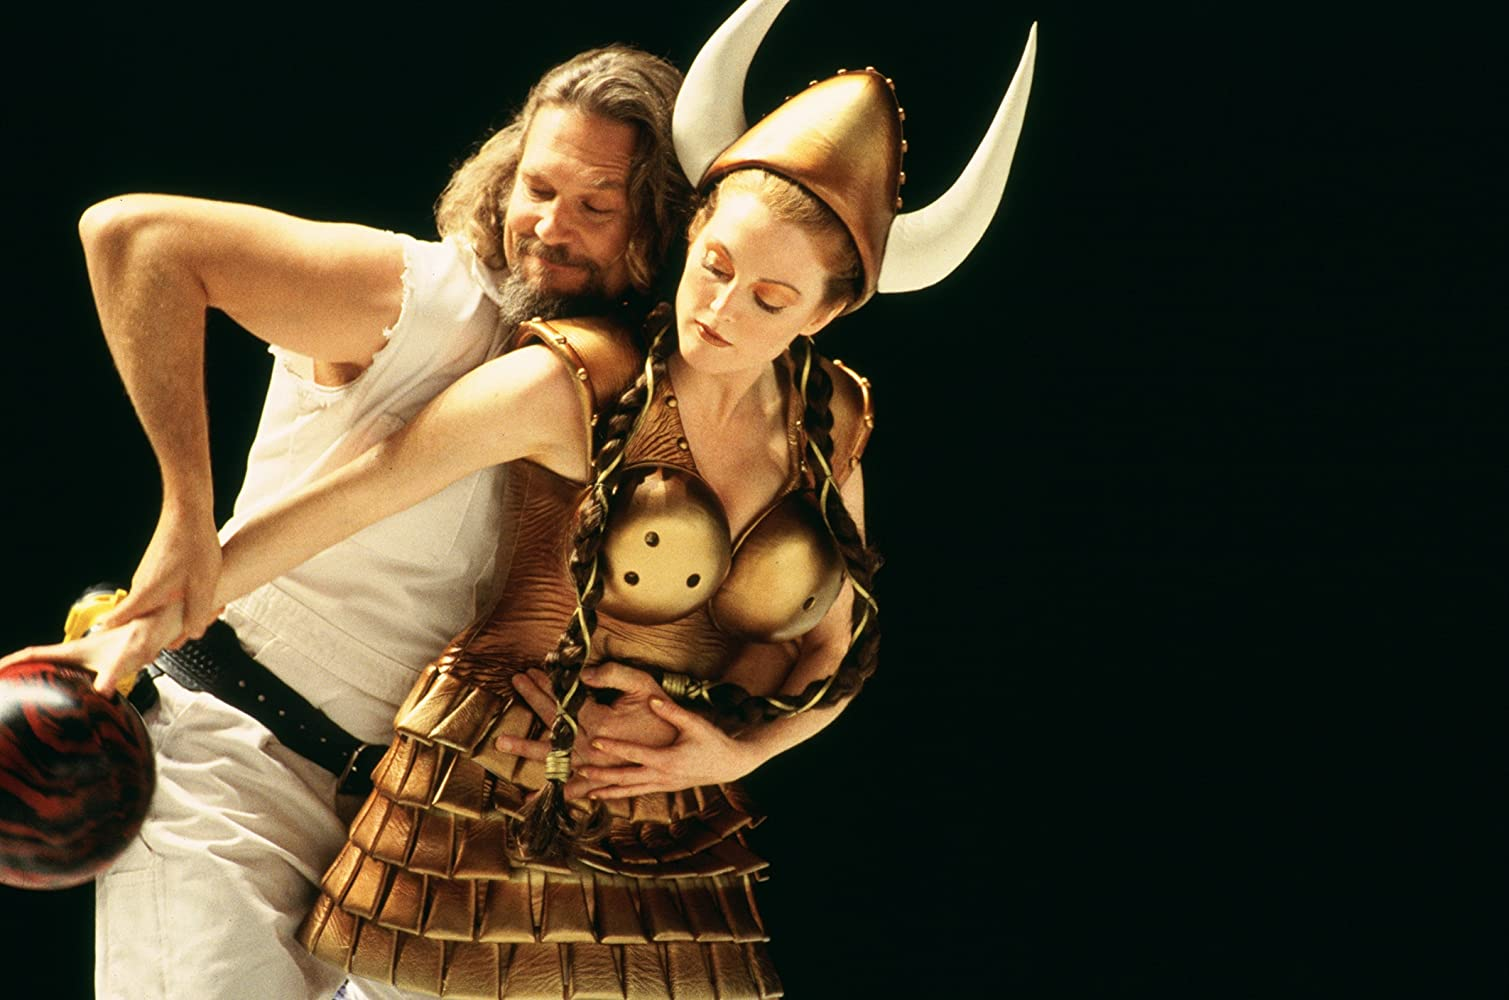 Julianne Moore and Jeff Bridges in The Big Lebowski (1998)